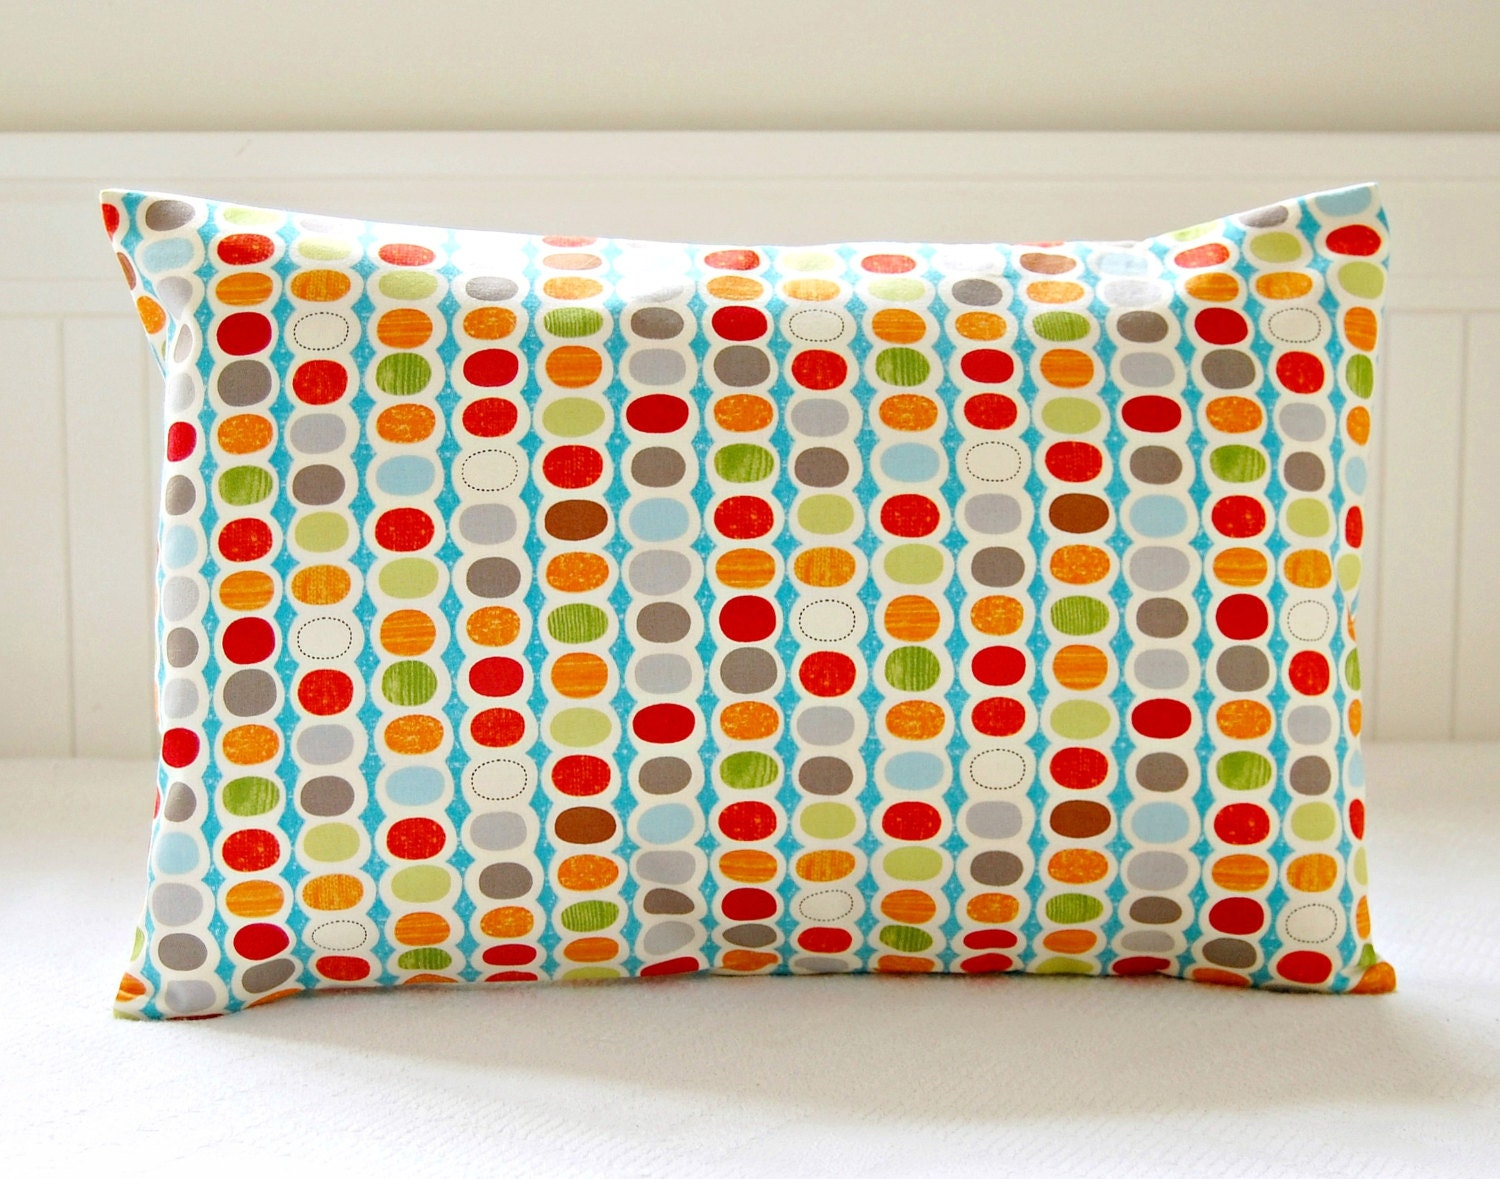 Red Green And Blue Throw Pillows : retro decorative pillow cover red blue green by LittleJoobieBoo